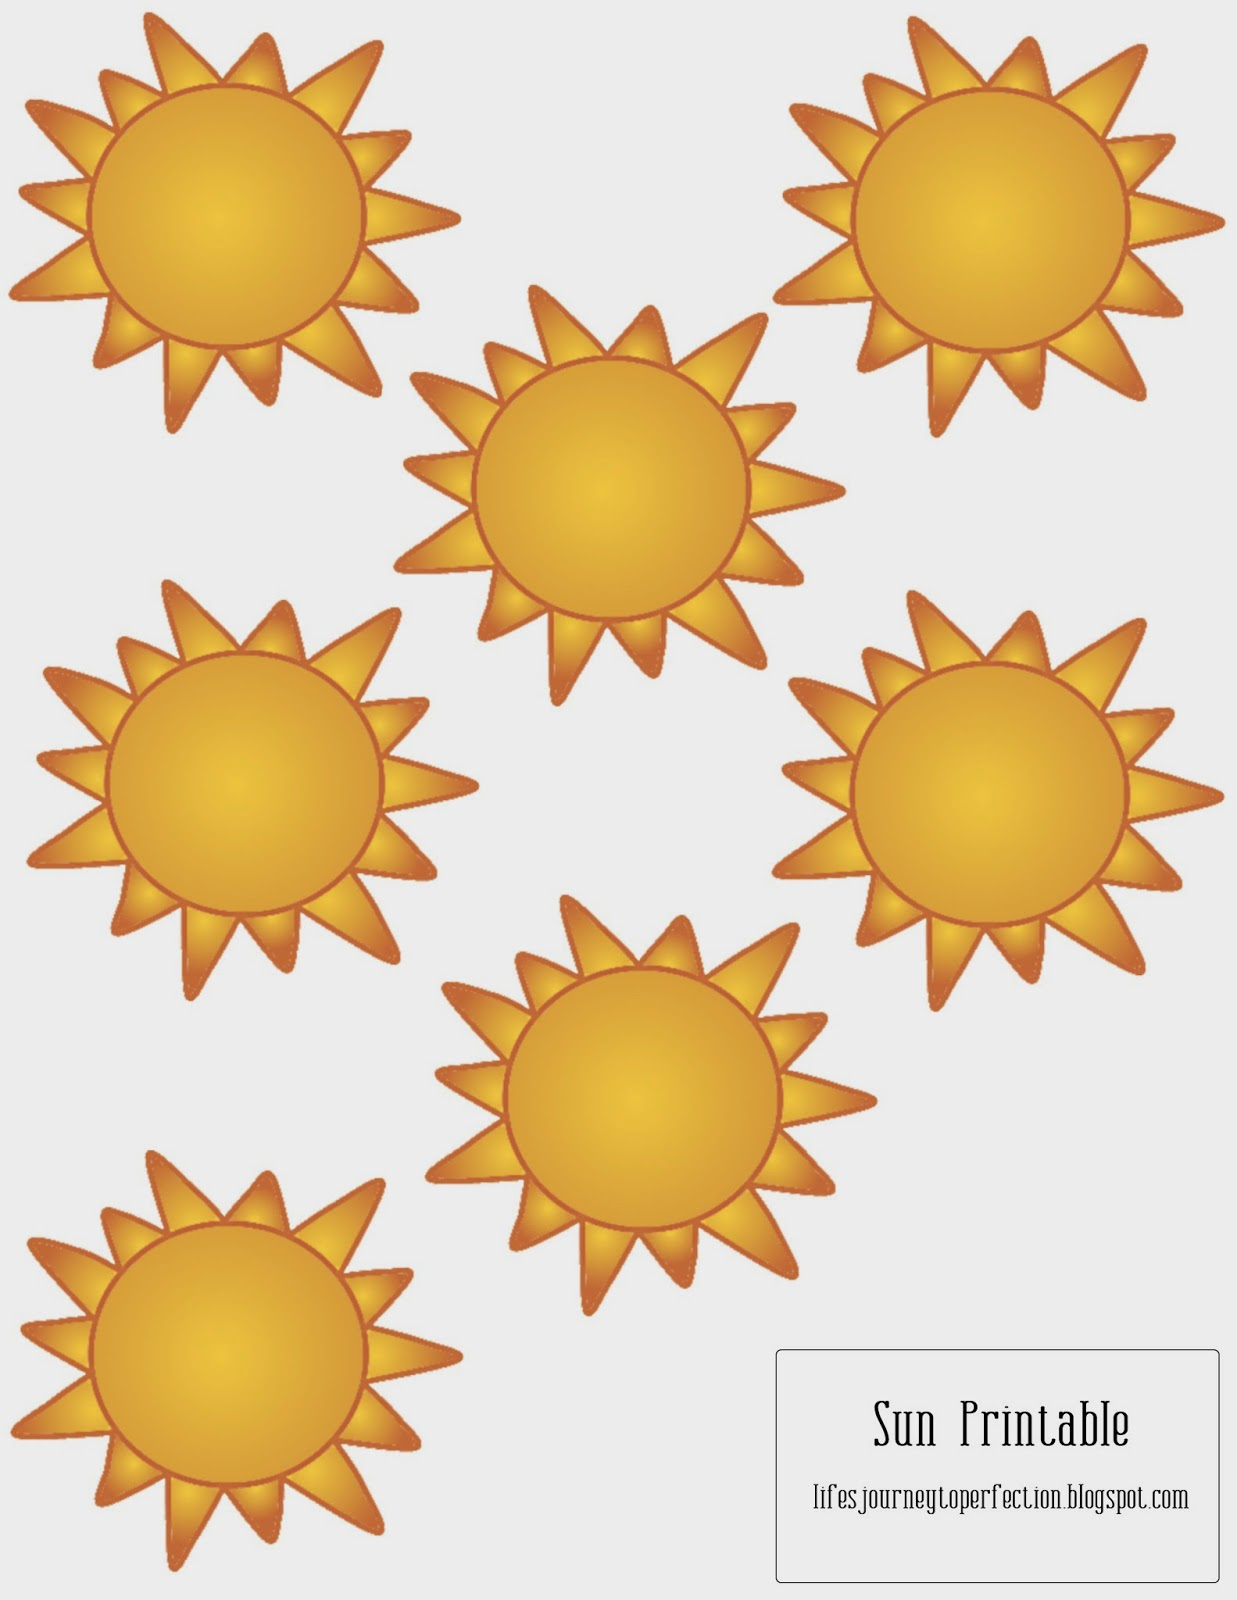 It's just an image of Superb Printable Pictures of the Sun